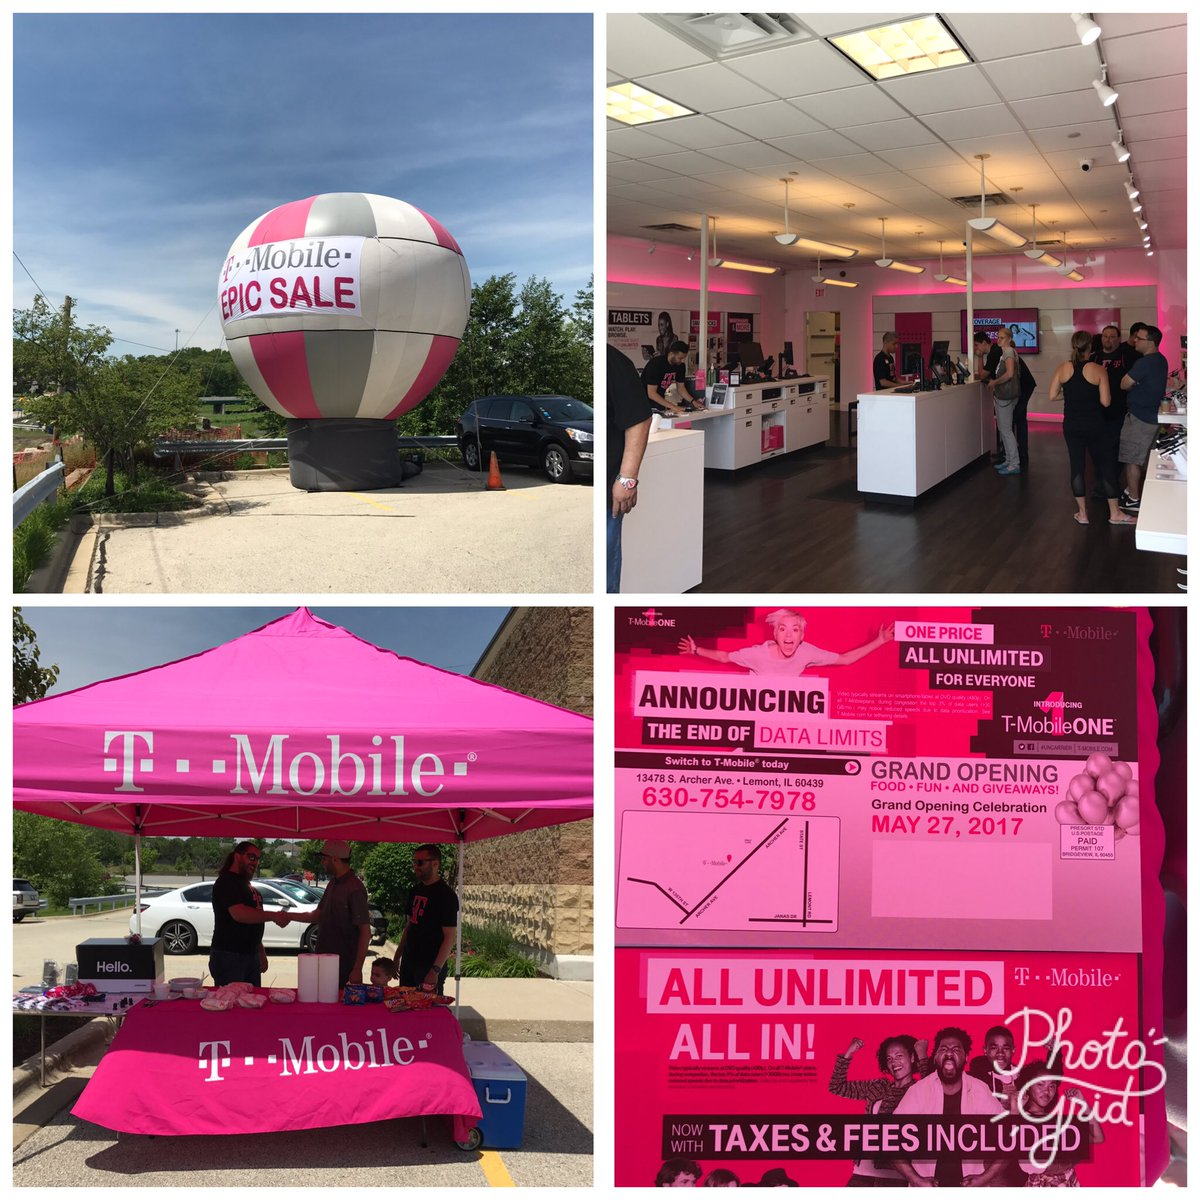 Celebrating our Grand Opening at our New T-Mobile location at Lemont, IL #ncredible @willingofficial @Kenyadunn12 @CP_Polizzi<br>http://pic.twitter.com/73aX9OLkuN